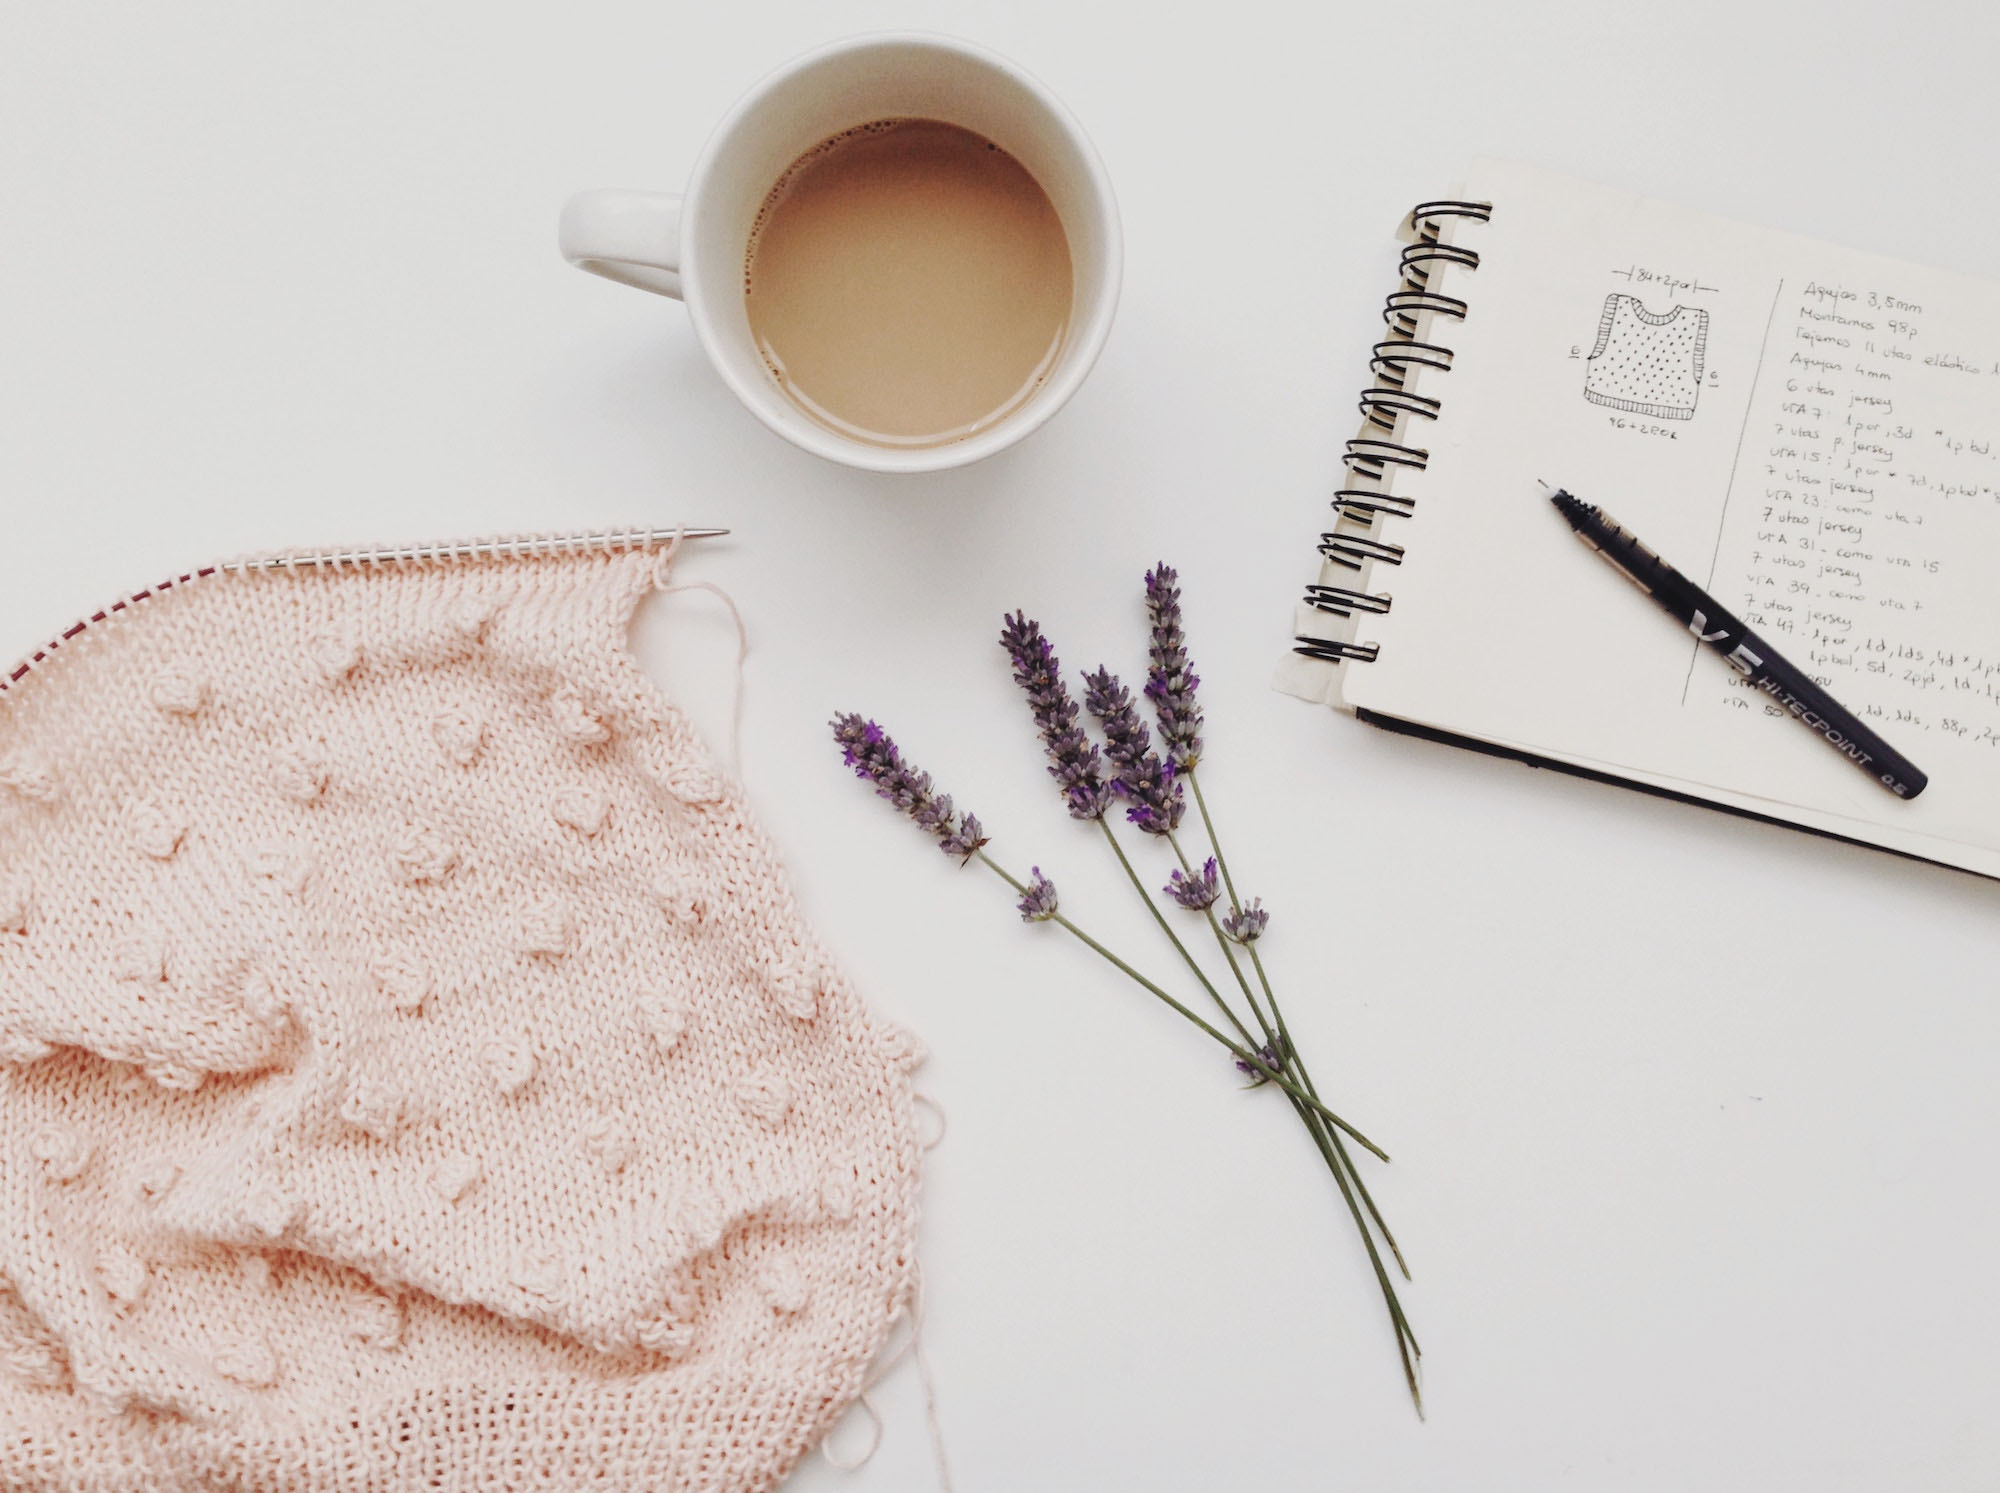 knitting a baby grow and notebook on white table.jpg